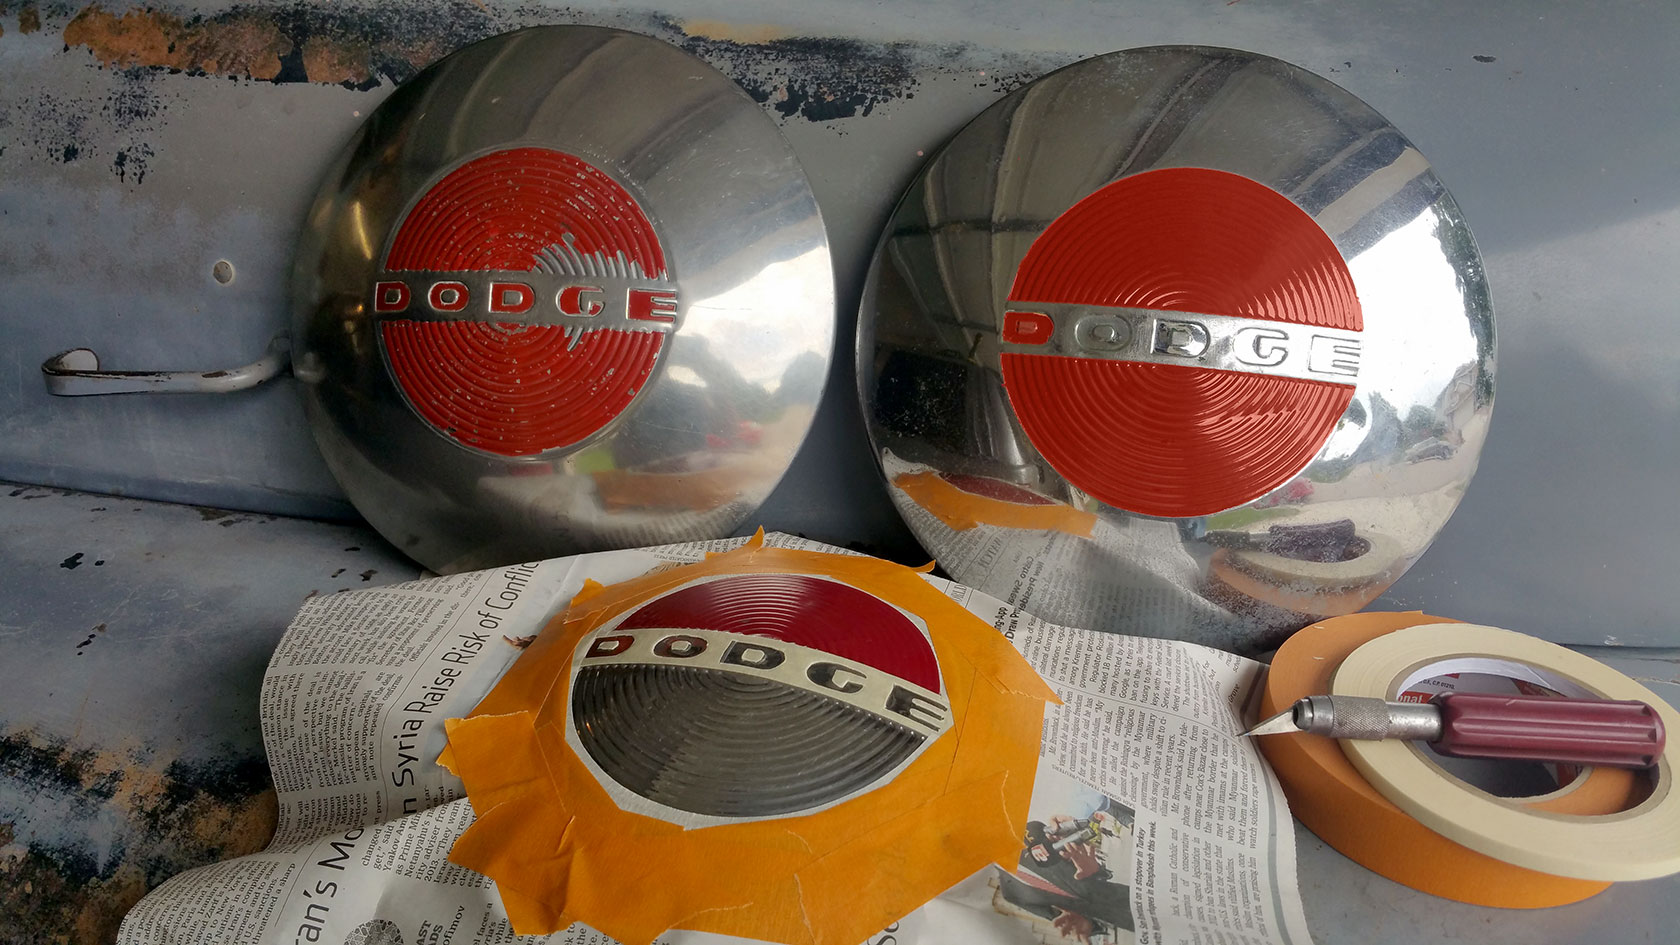 1950-Dodge-B2B-Hubcaps-Being-Prepped-and